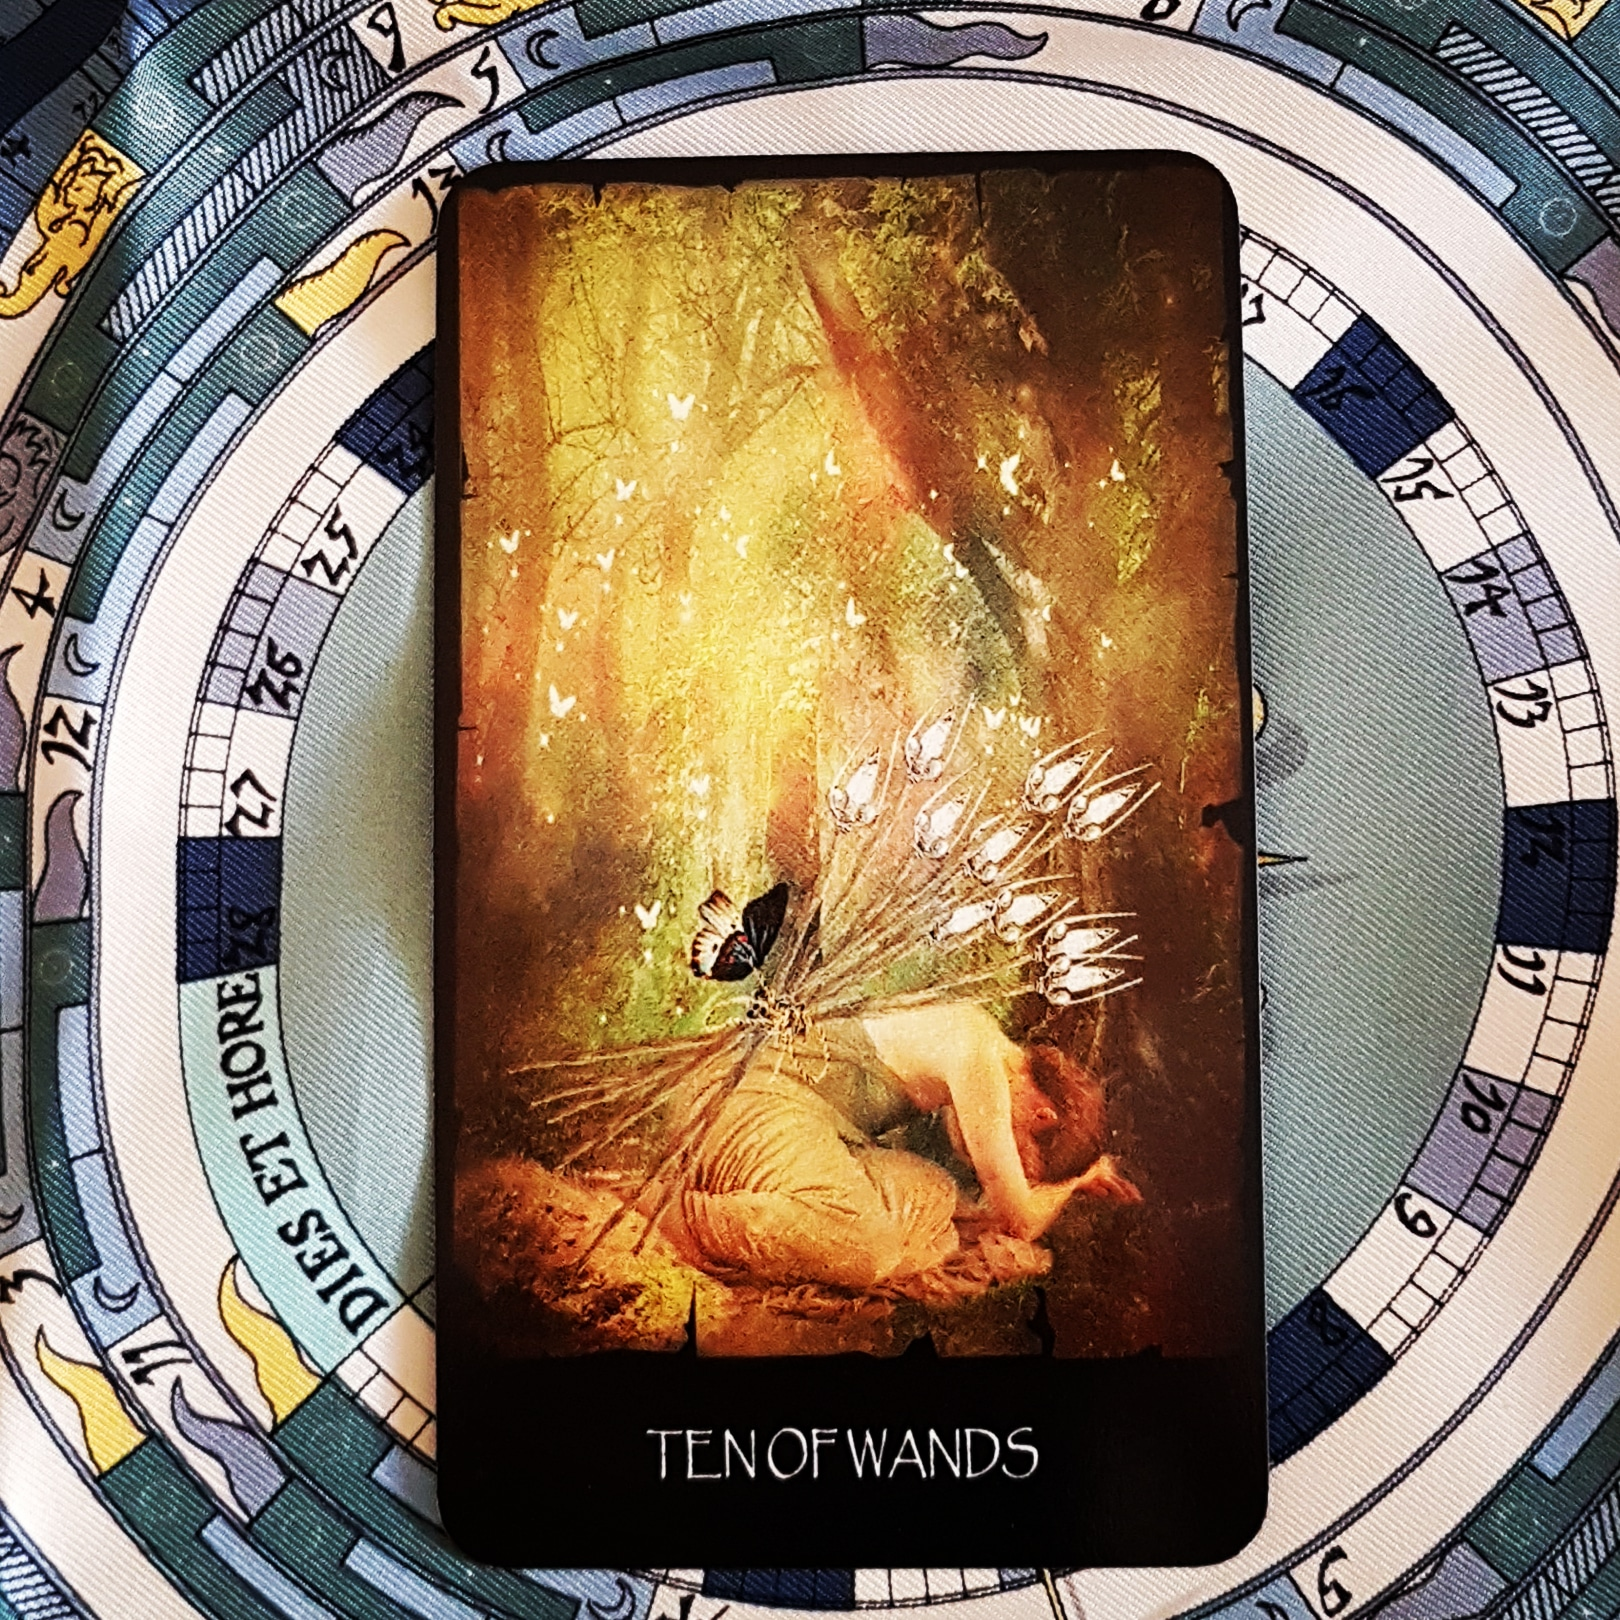 7 of Pentacles | Notes by Nectar